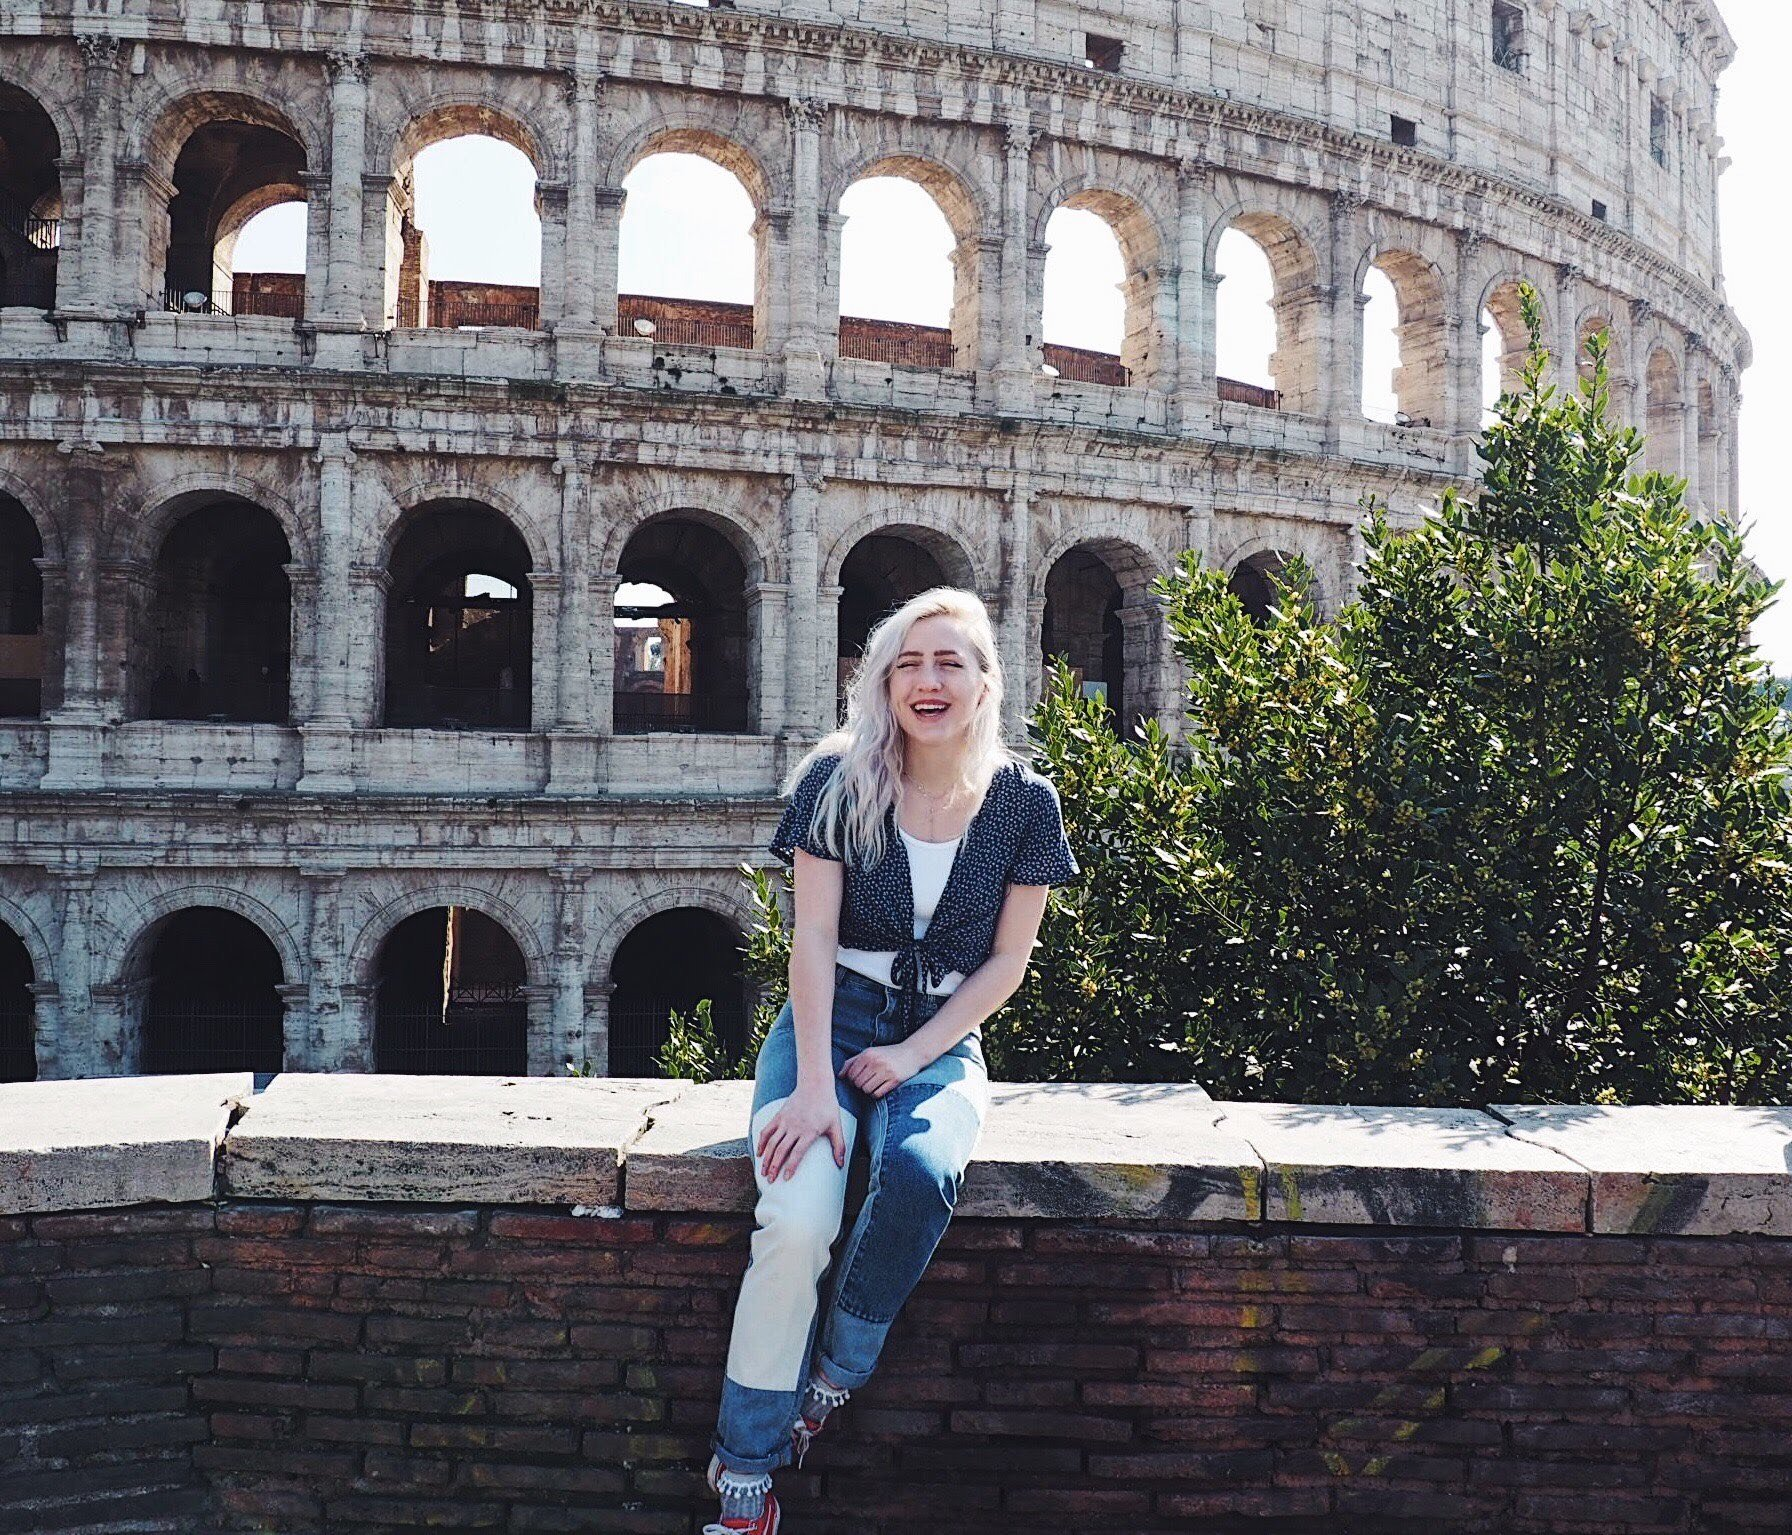 Hannah Solomon - Studying Abroad In College